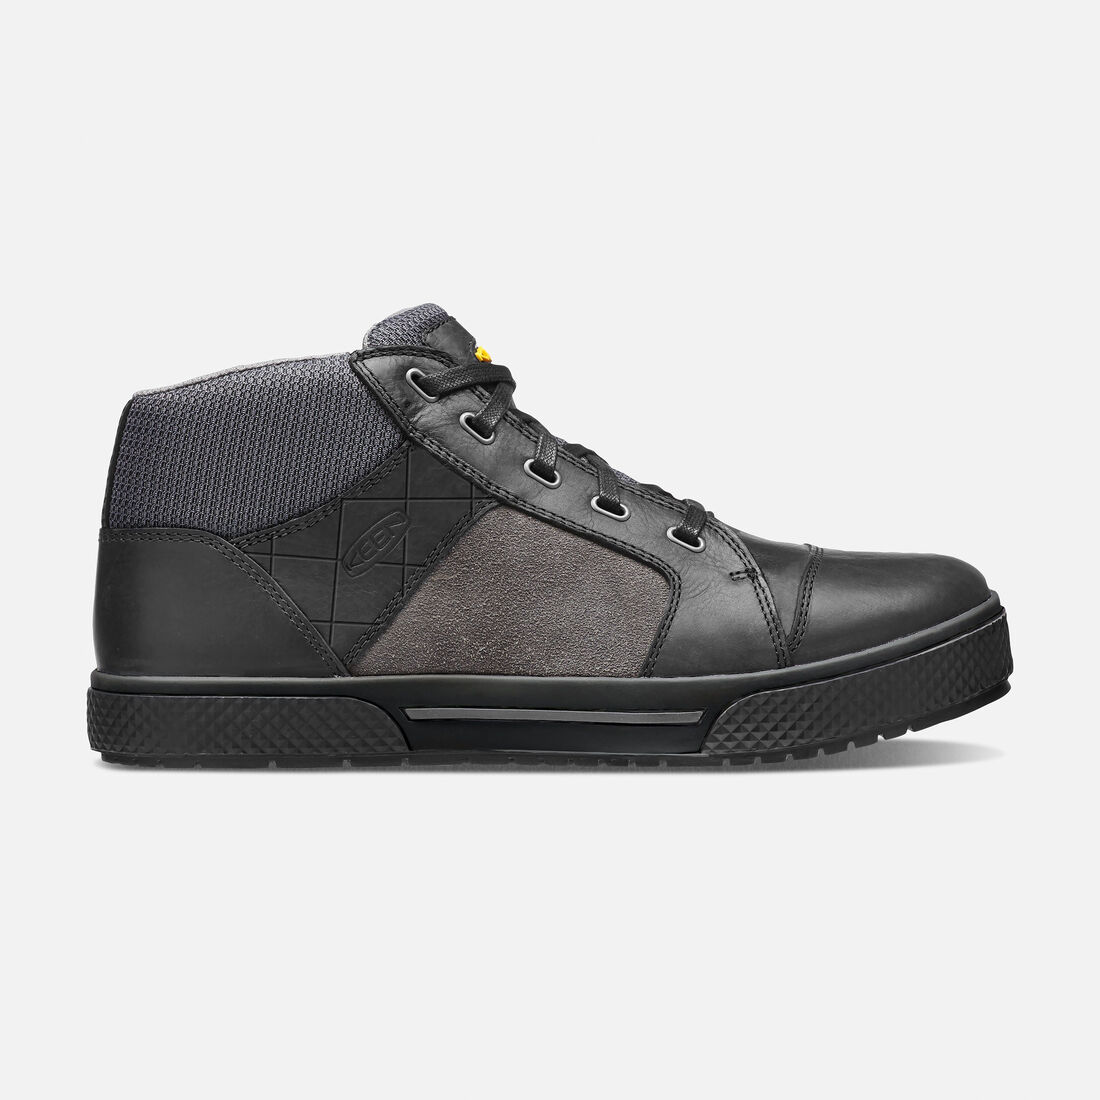 Men's Destin Mid (Steel Toe) in Black/Gargoyle - large view.